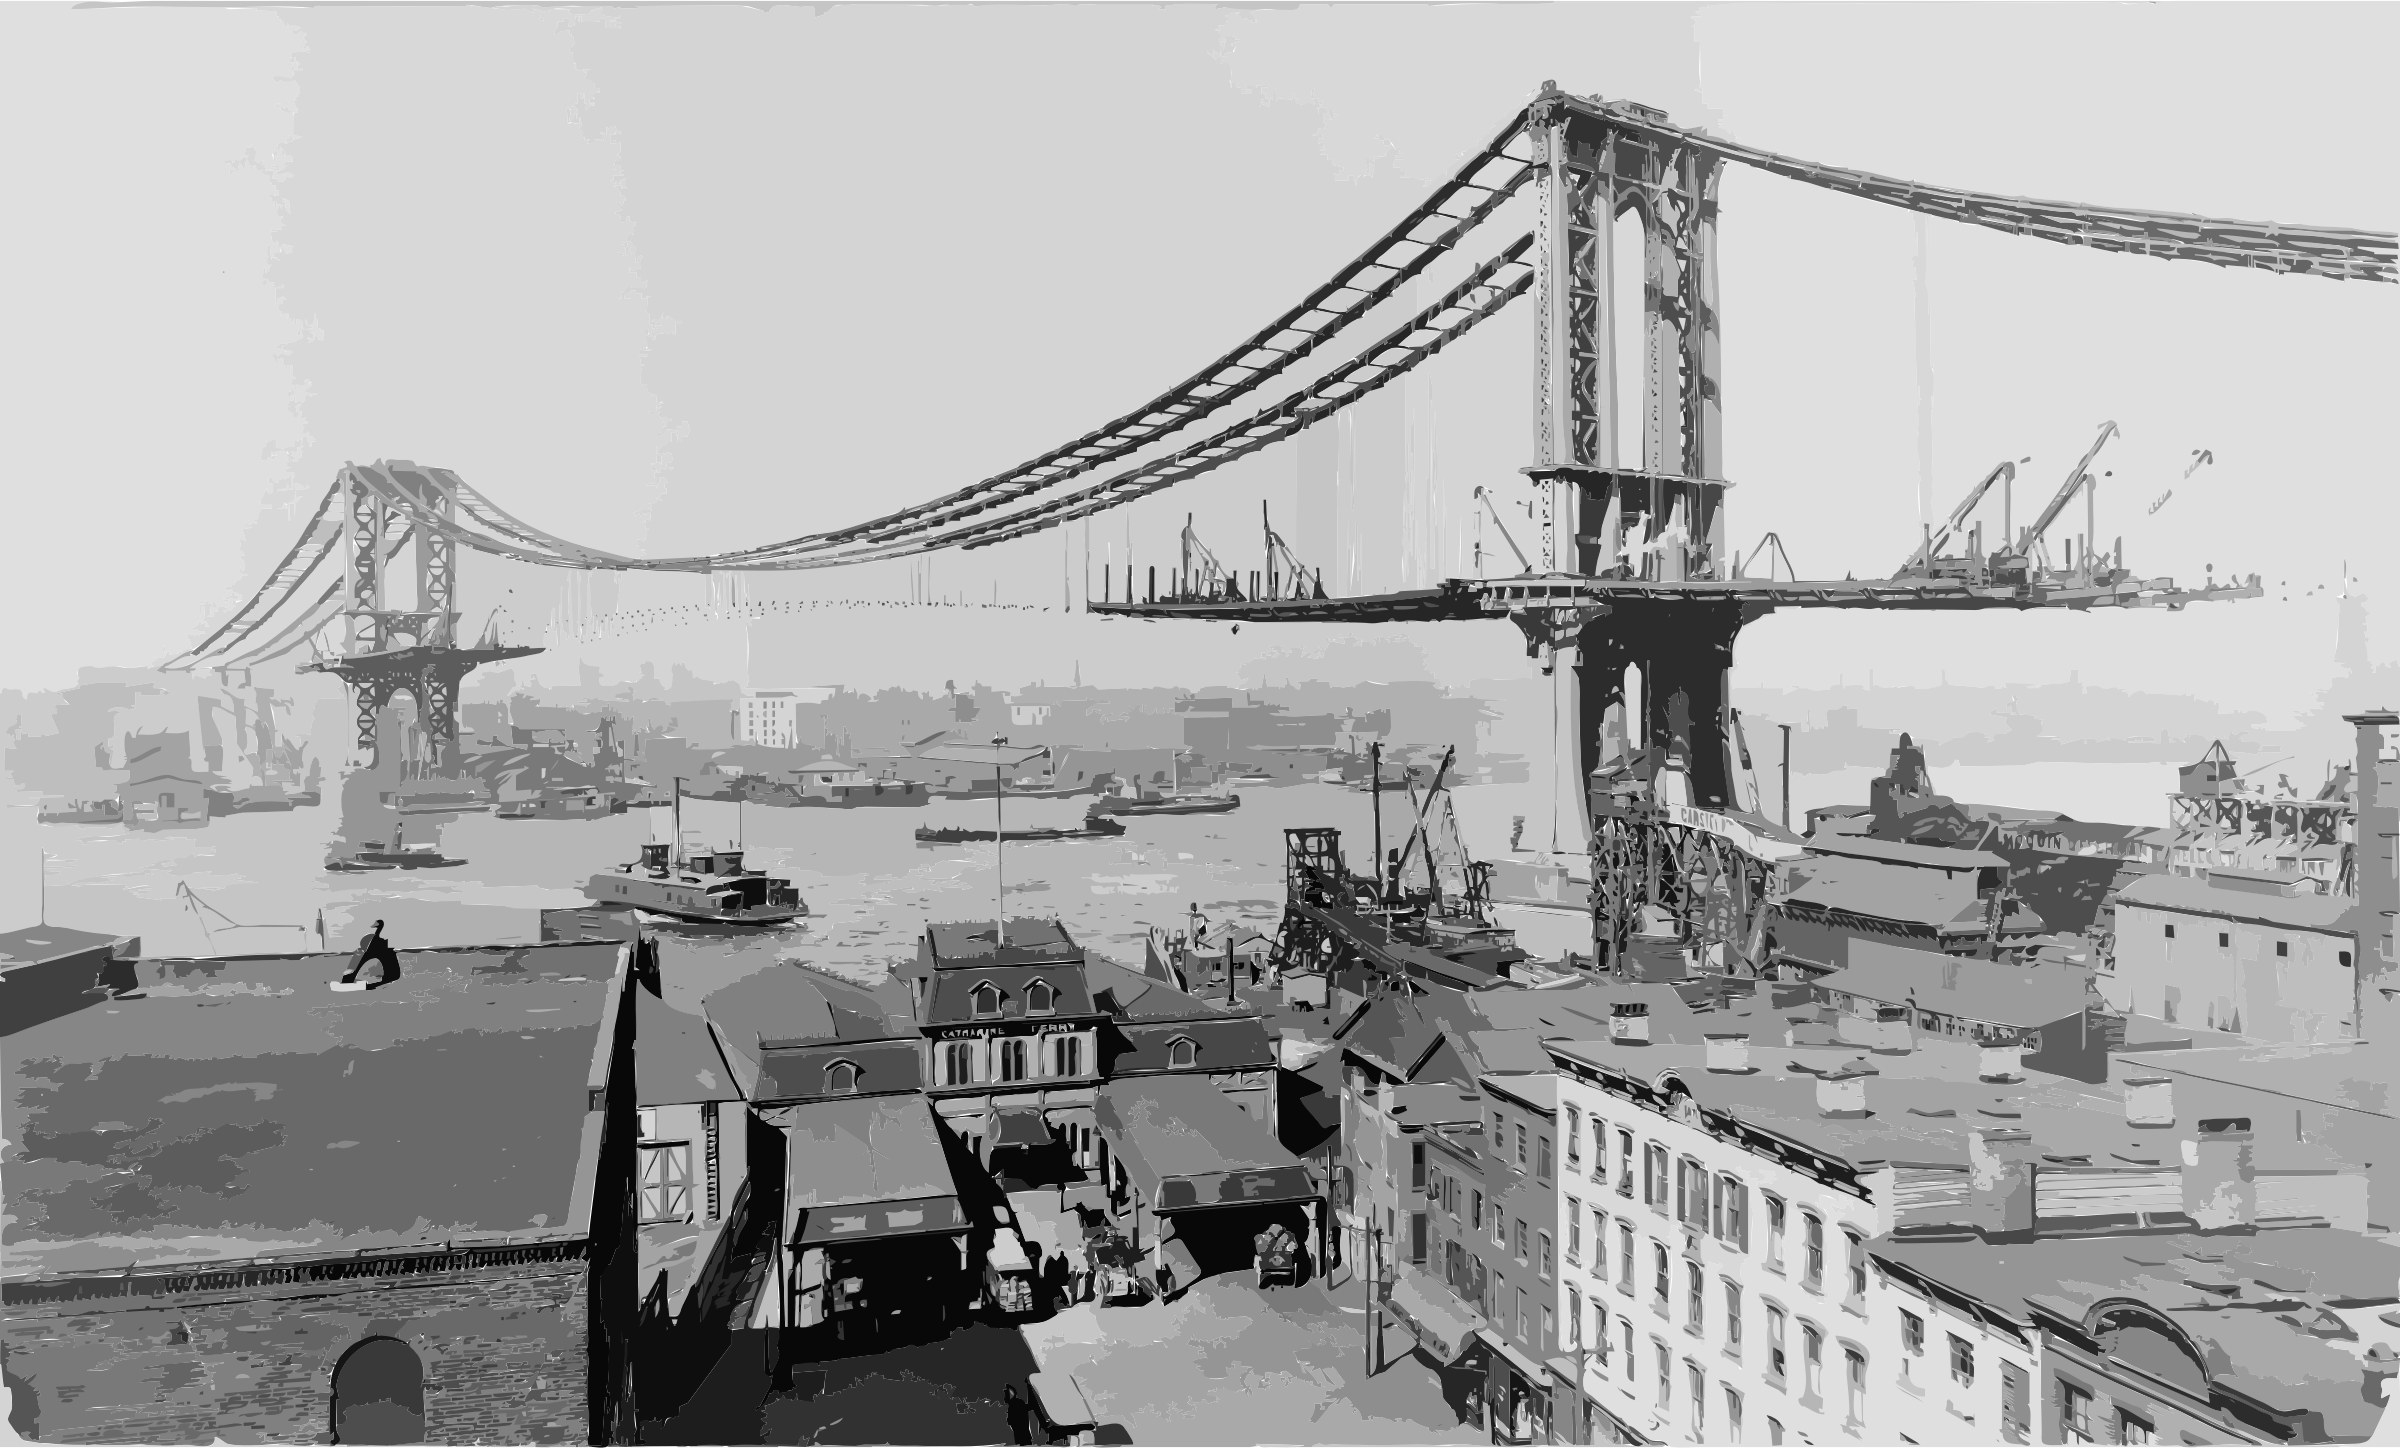 Manhattan Bridge Construction 1909 by 5nauj2+9nzynb3m7hk64